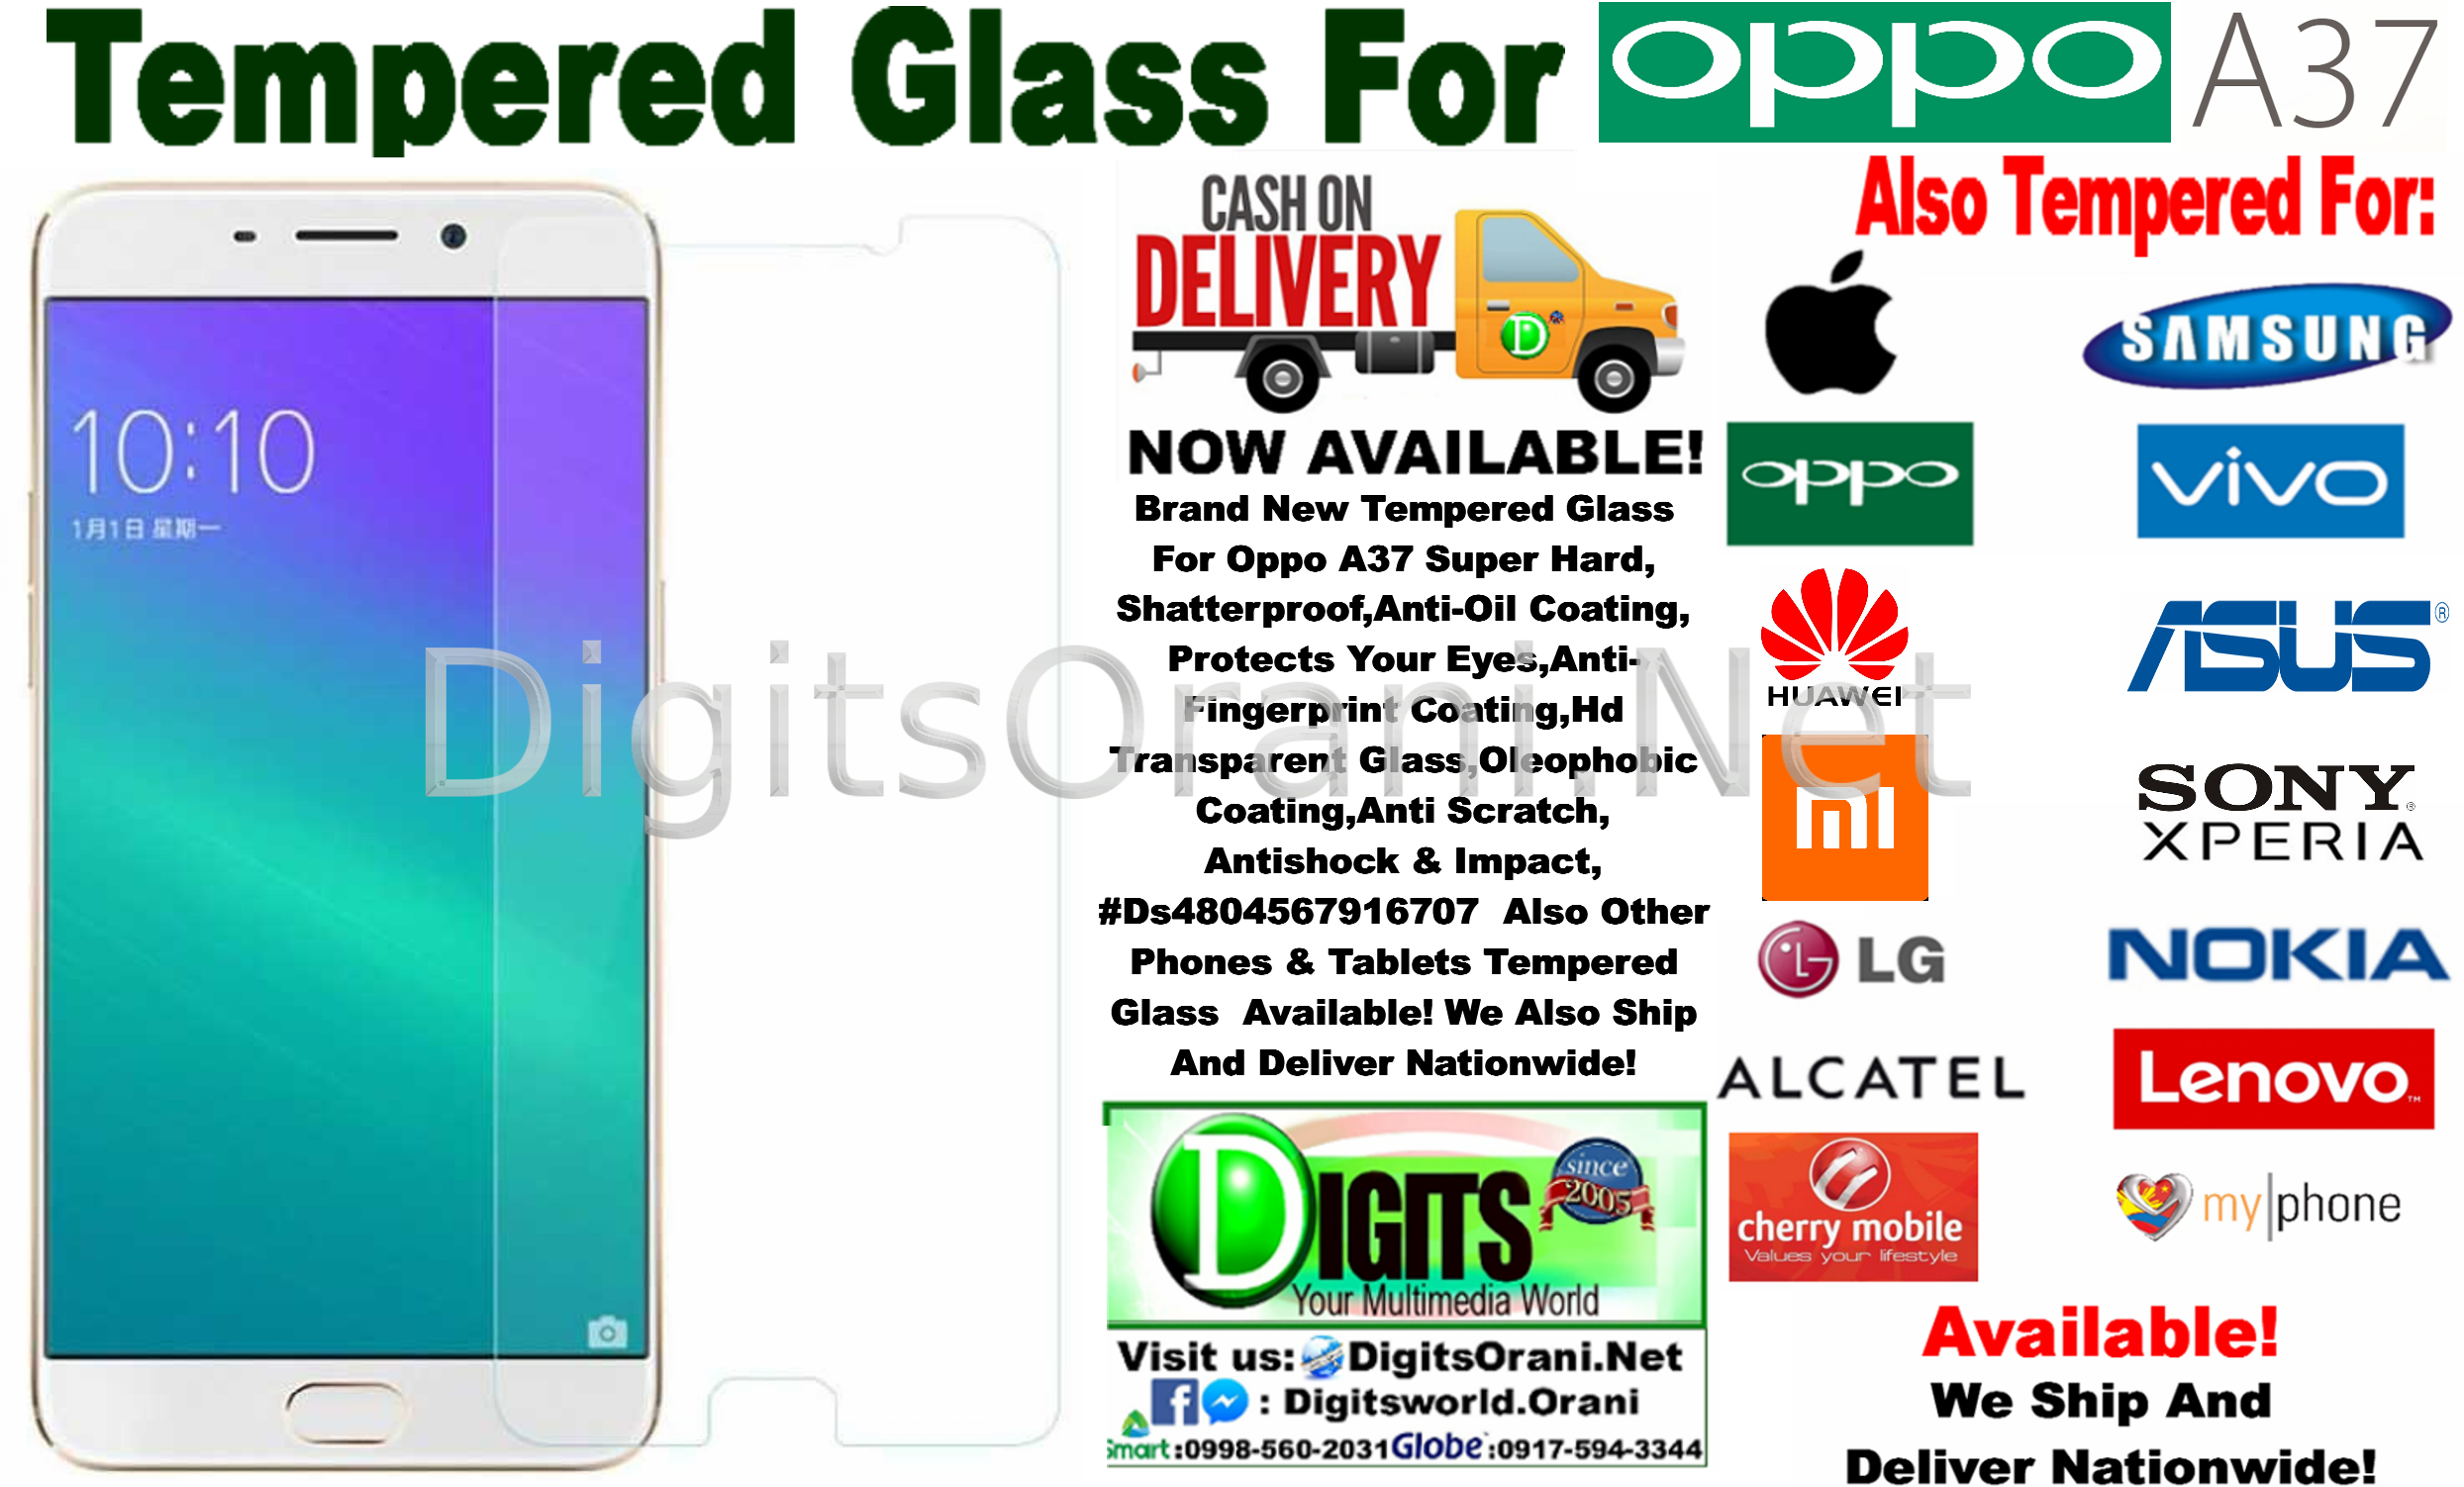 Tempered Glass For Oppo A37 Super Hard,Shatterproof,Anti-Oil  Coating,Protects Your Eyes,Anti-Fingerprint Coating,Hd Transparent  Glass,Oleophobic